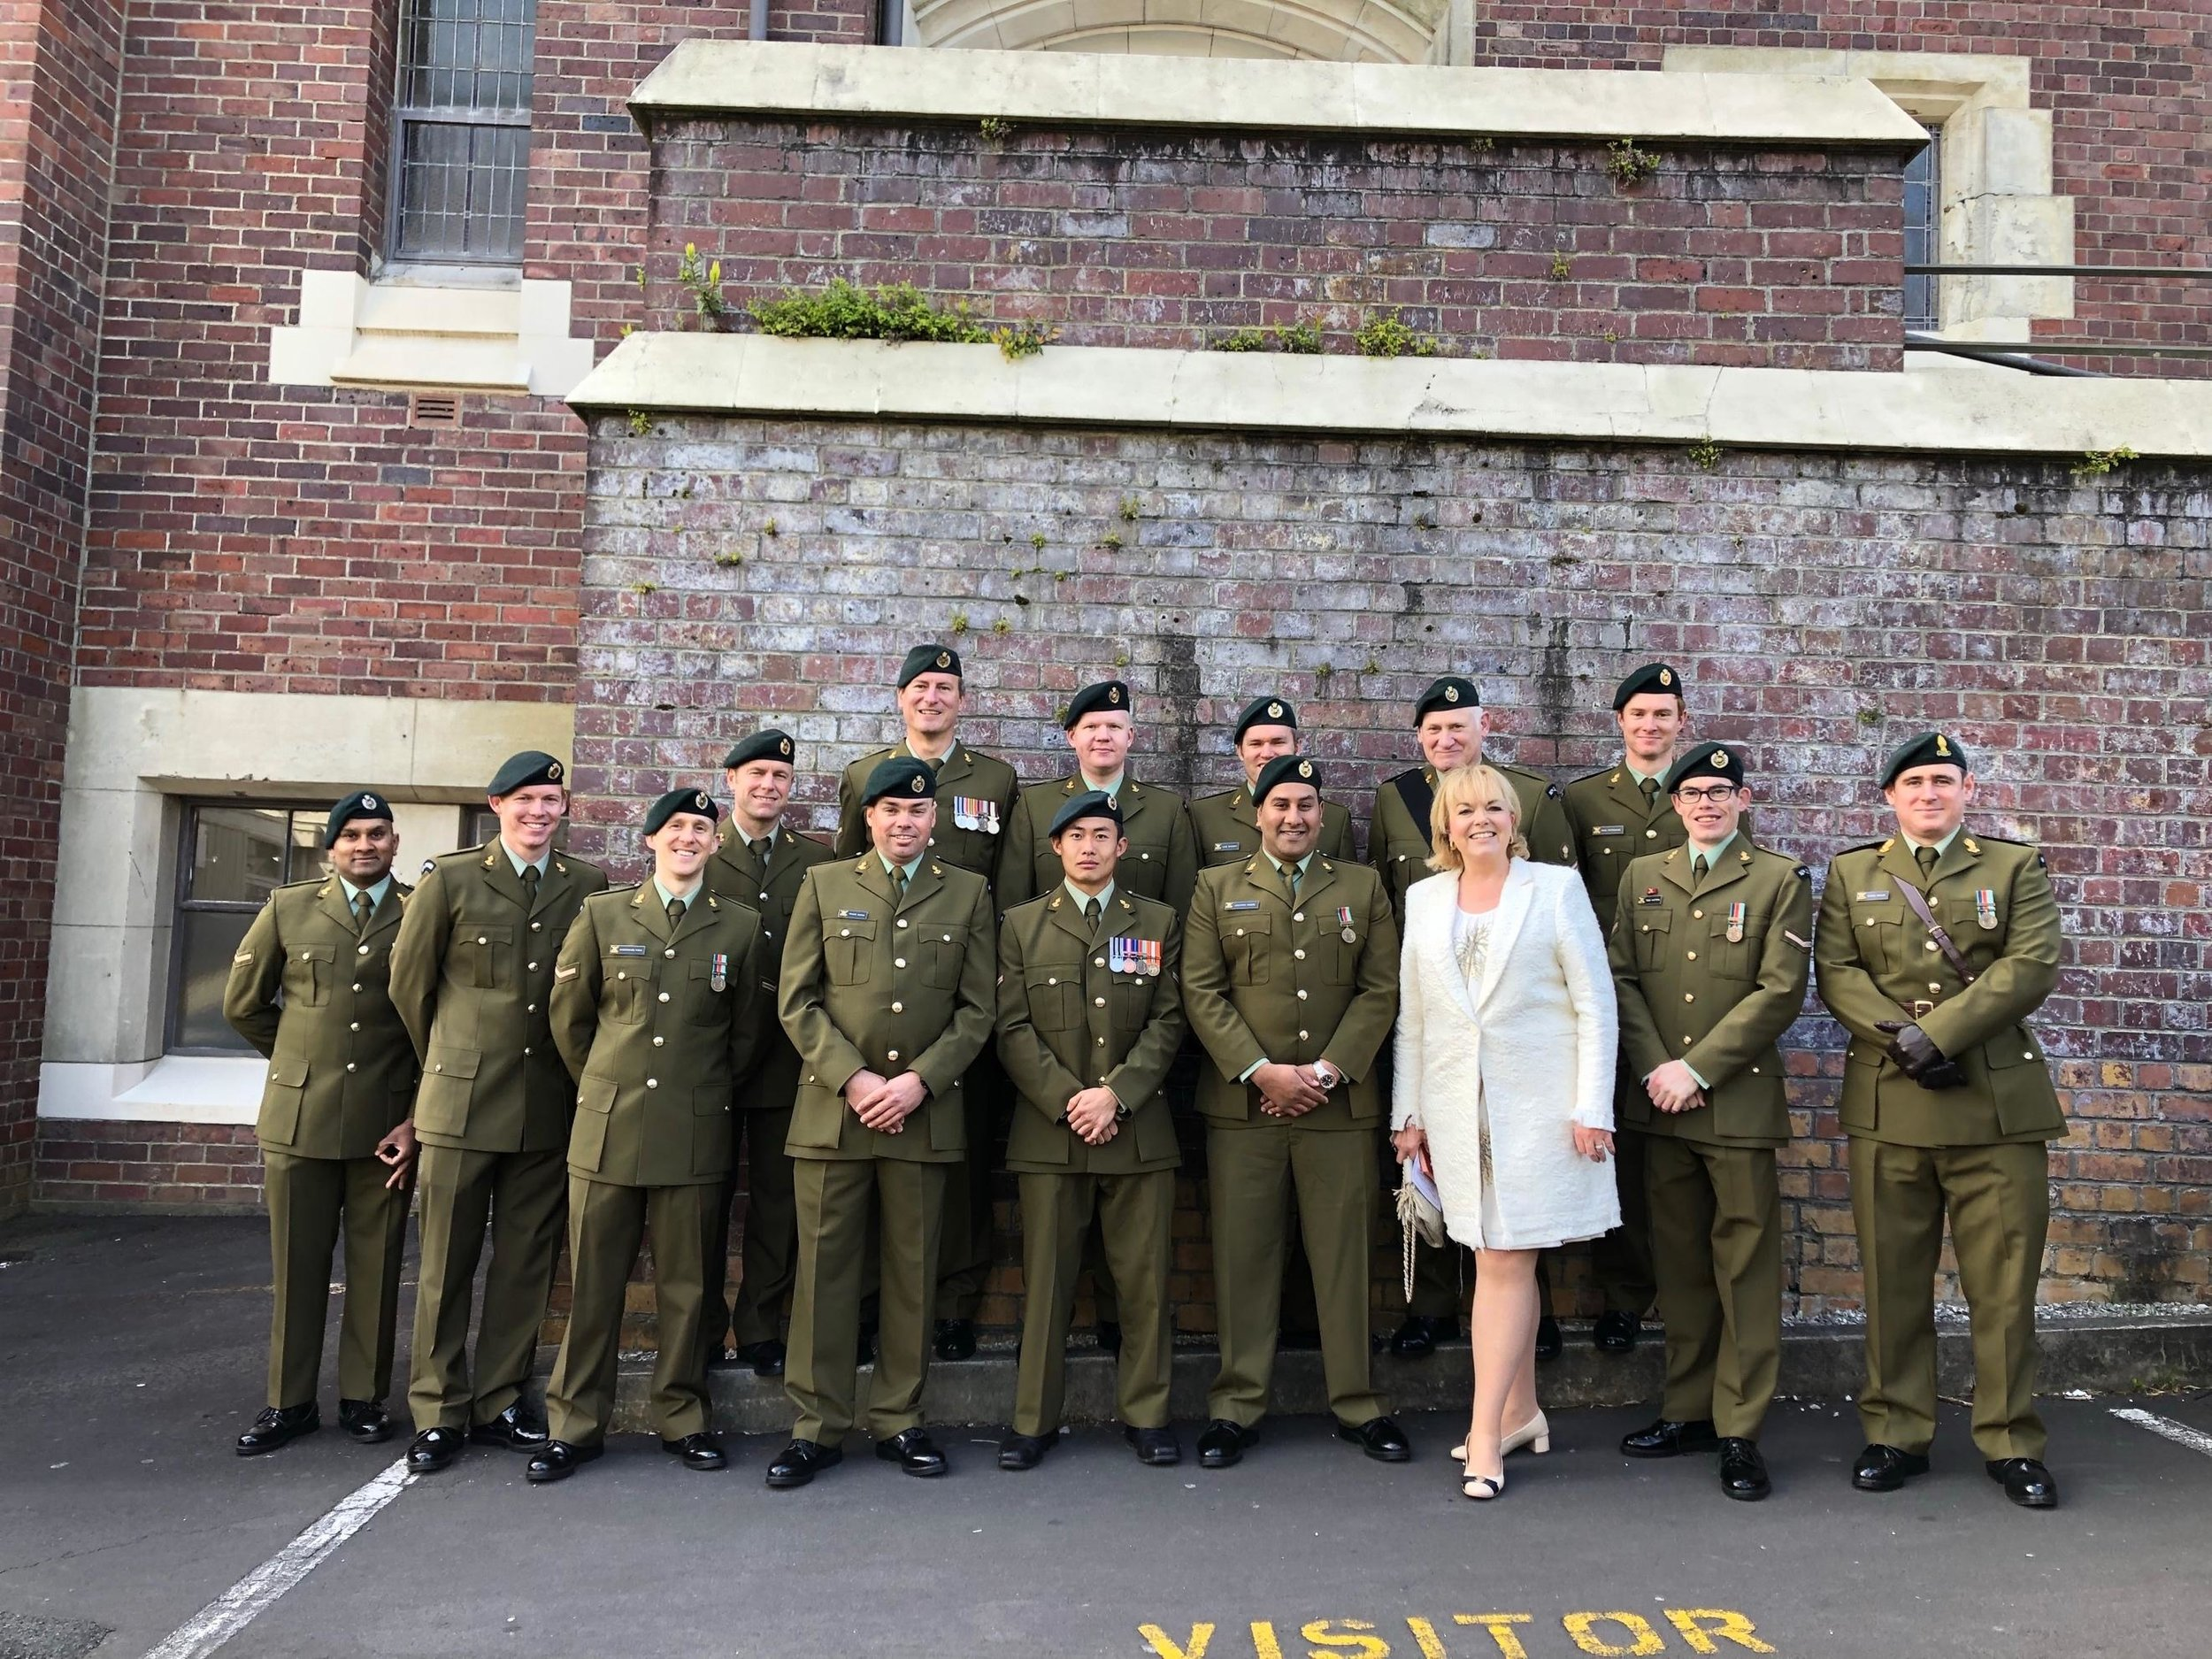 Members of the RNZE / New Zealand Sappers together with the Hon Judith Collins whose father was a sapper.